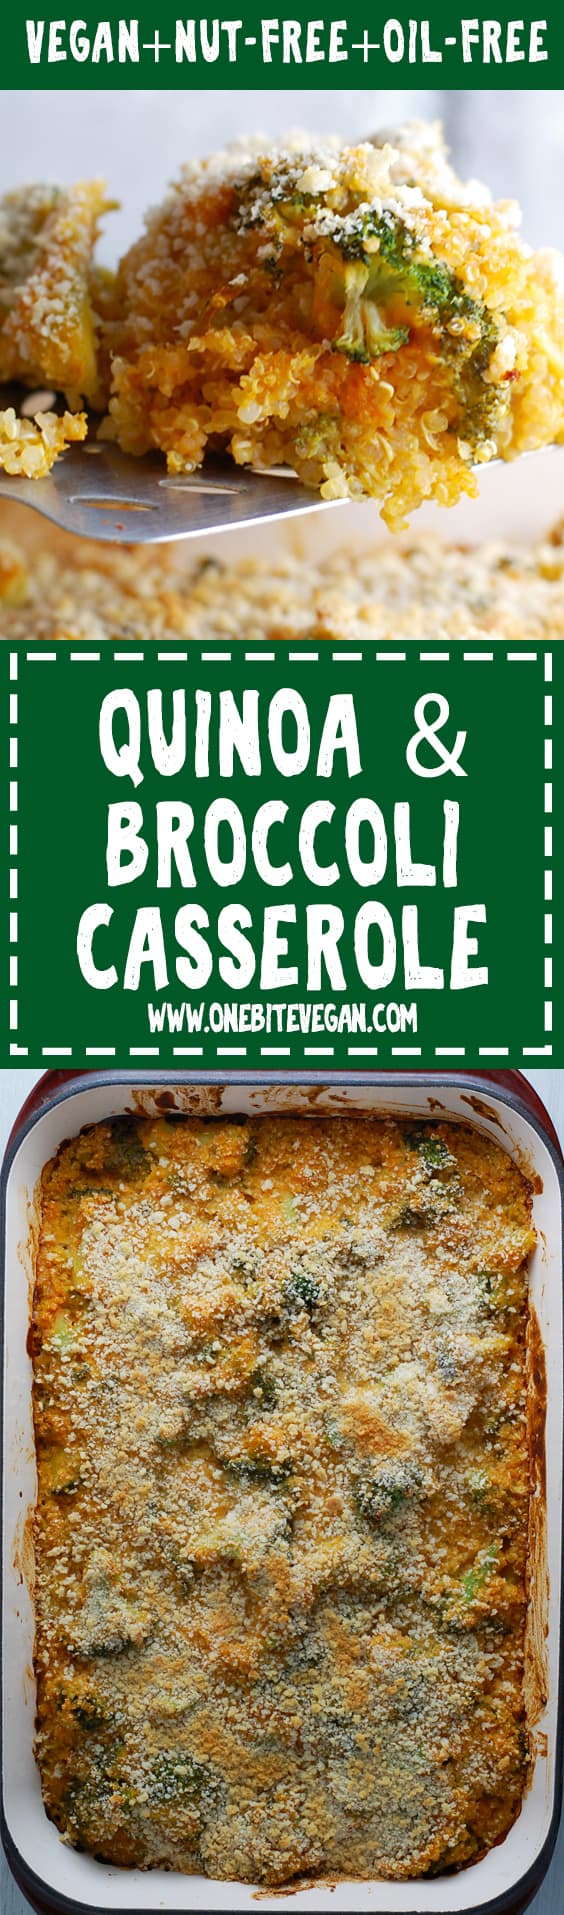 Vegan quinoa broccoli casserole. Healthy quinoa casserole made in minutes and without any added fats or oils. Make ahead for a busy weekday dinner.